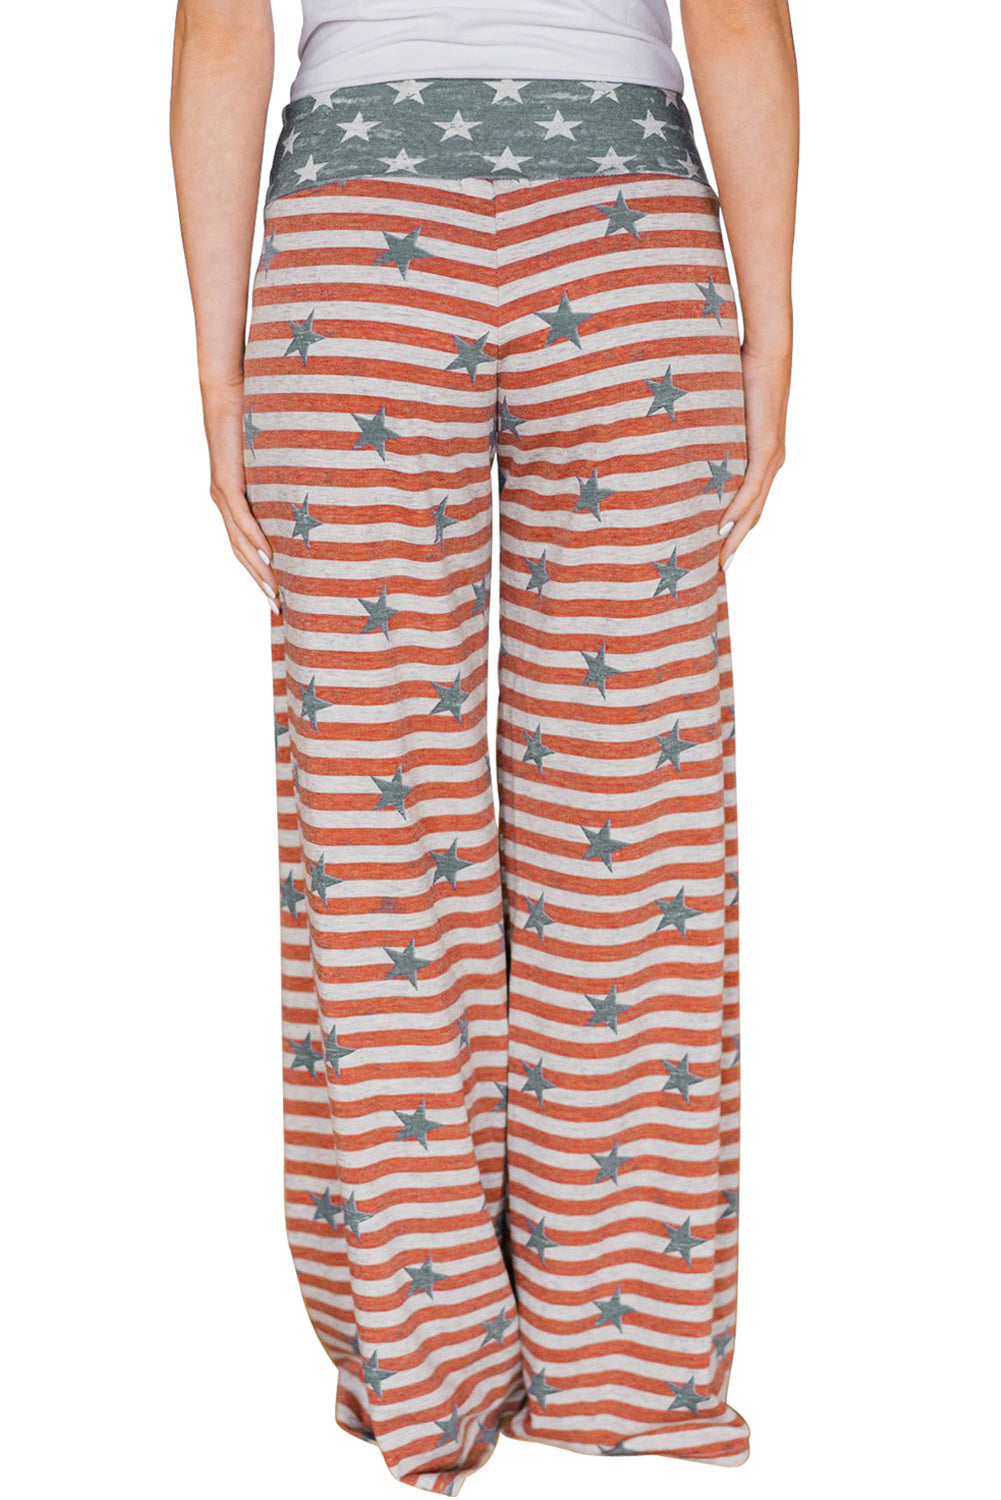 The American Dream Striped Lounge Pants